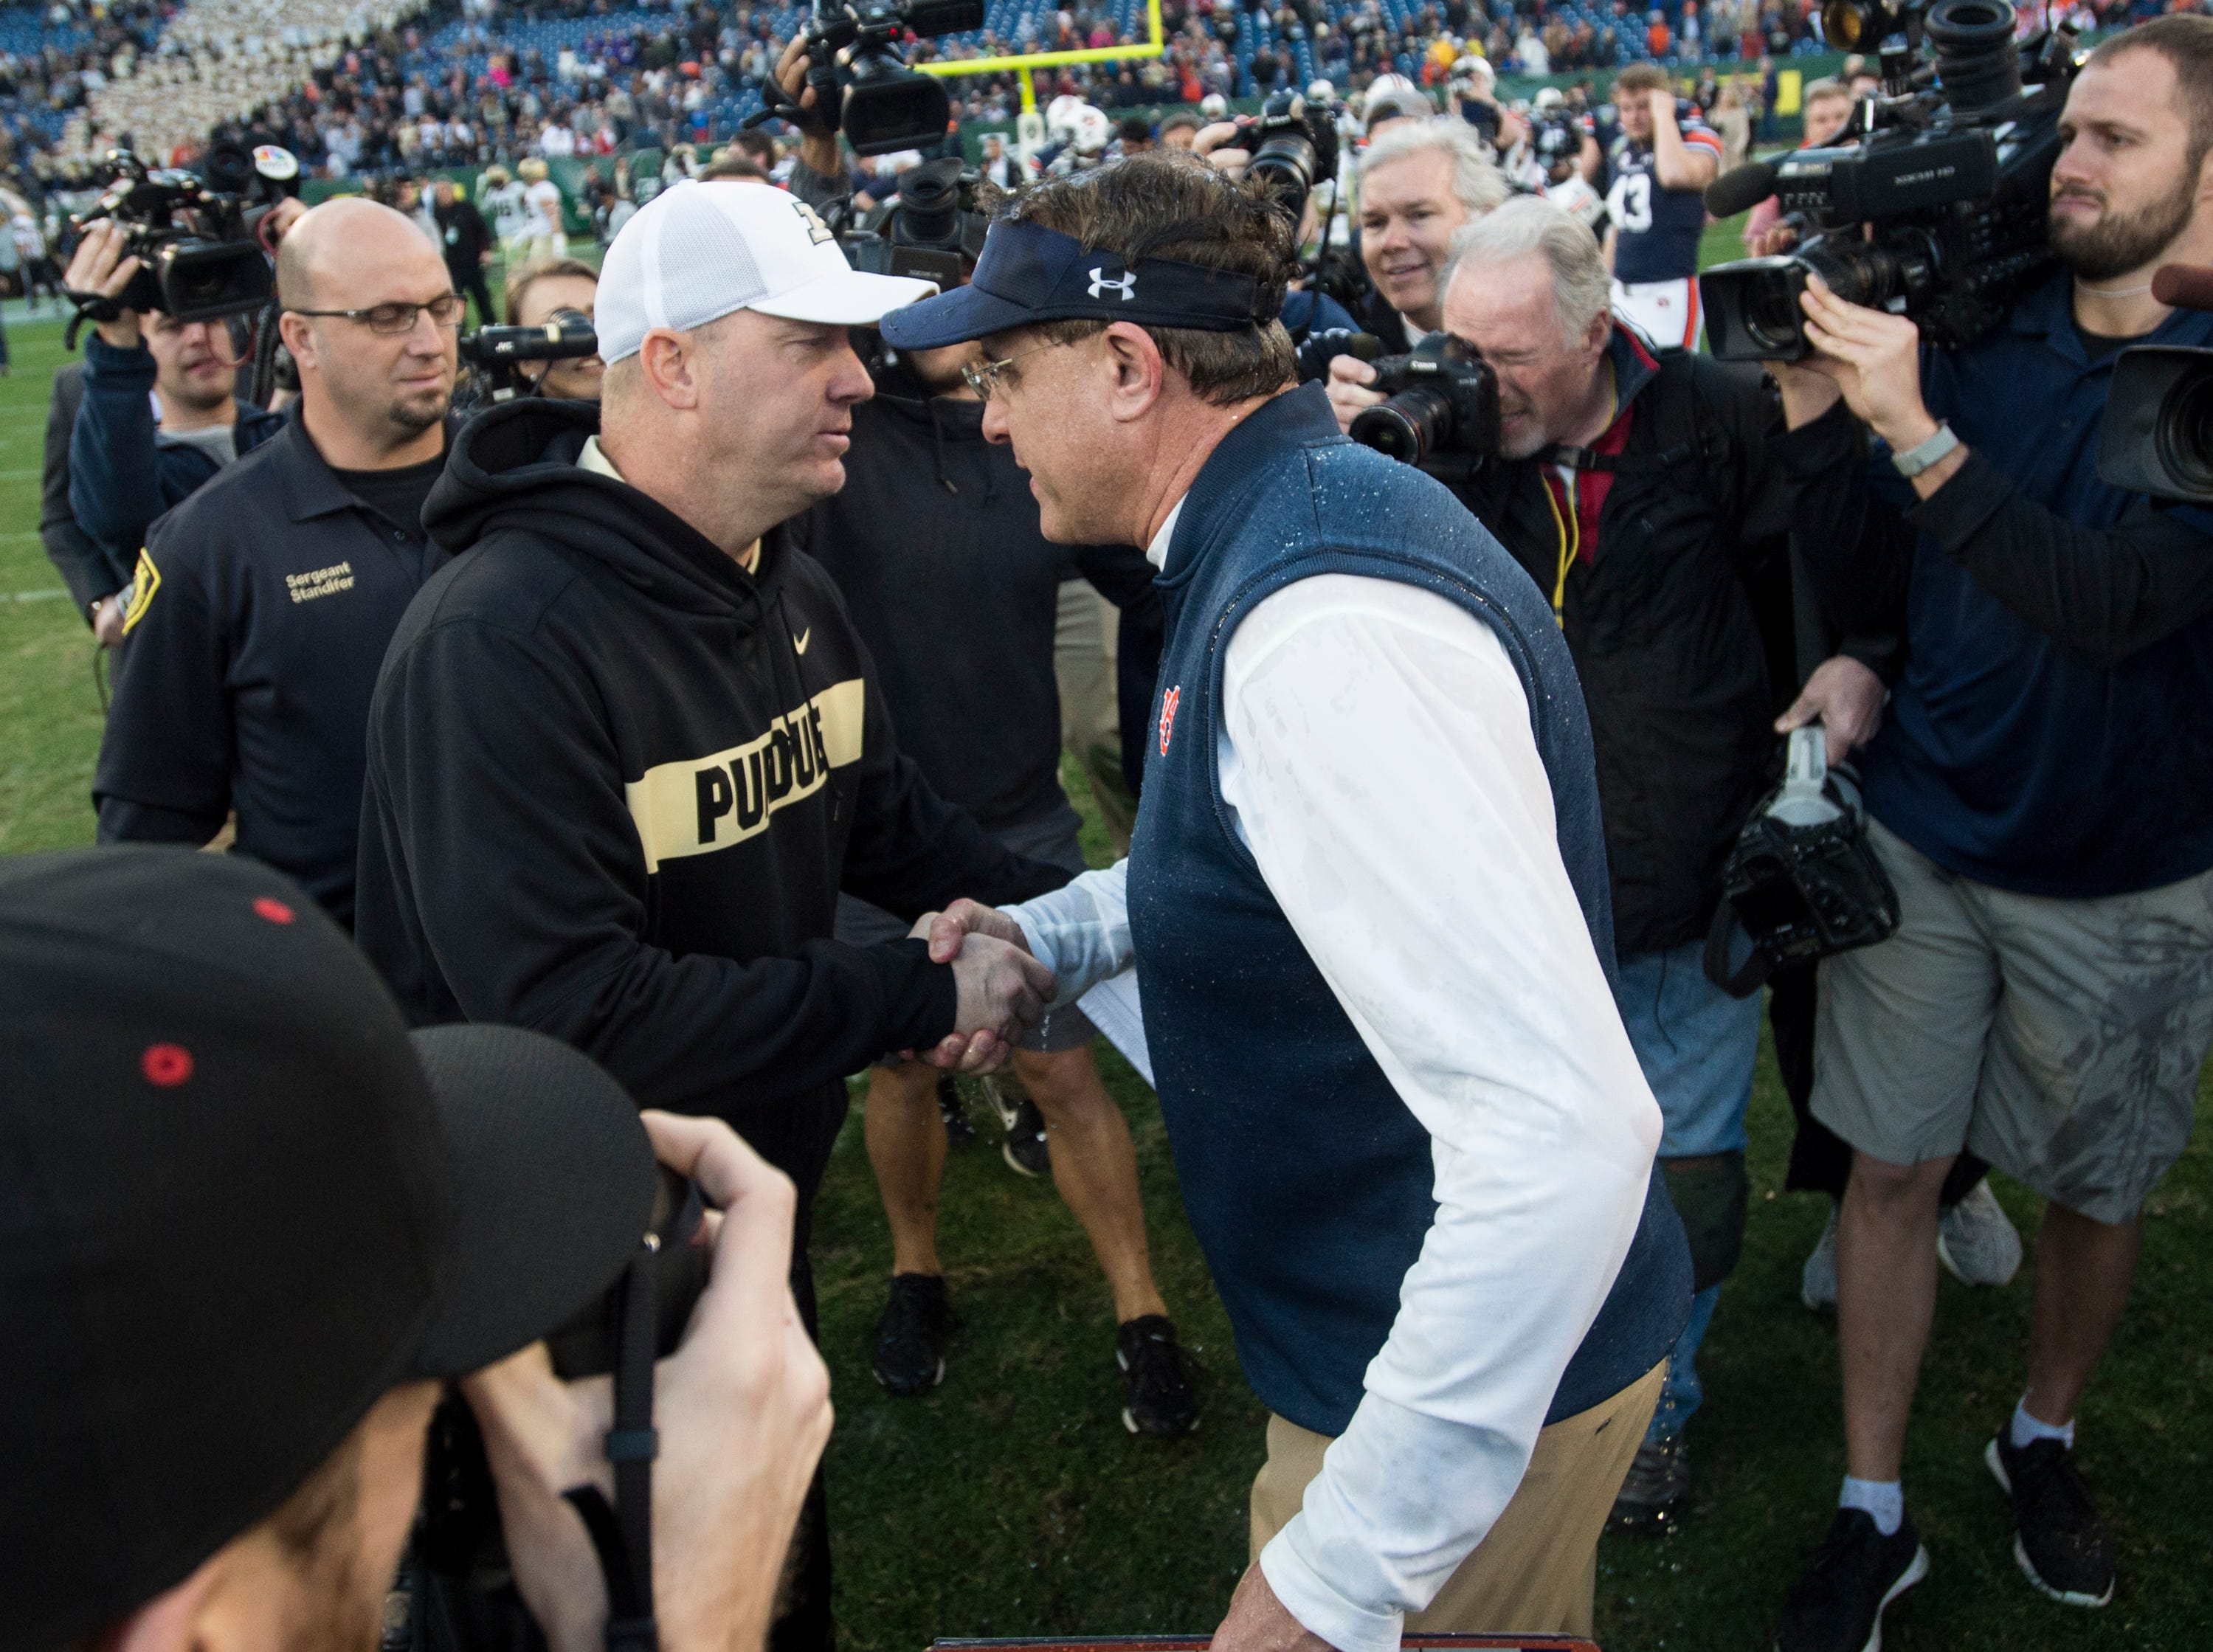 Purdue head coach Jeff Brohm and Auburn head coach Gus Malzahn shake hands after the Music City Bowl at Nissan Stadium in Nashville, Tenn., on Friday, Dec. 28, 2018. Auburn defeated Purdue 63-14.